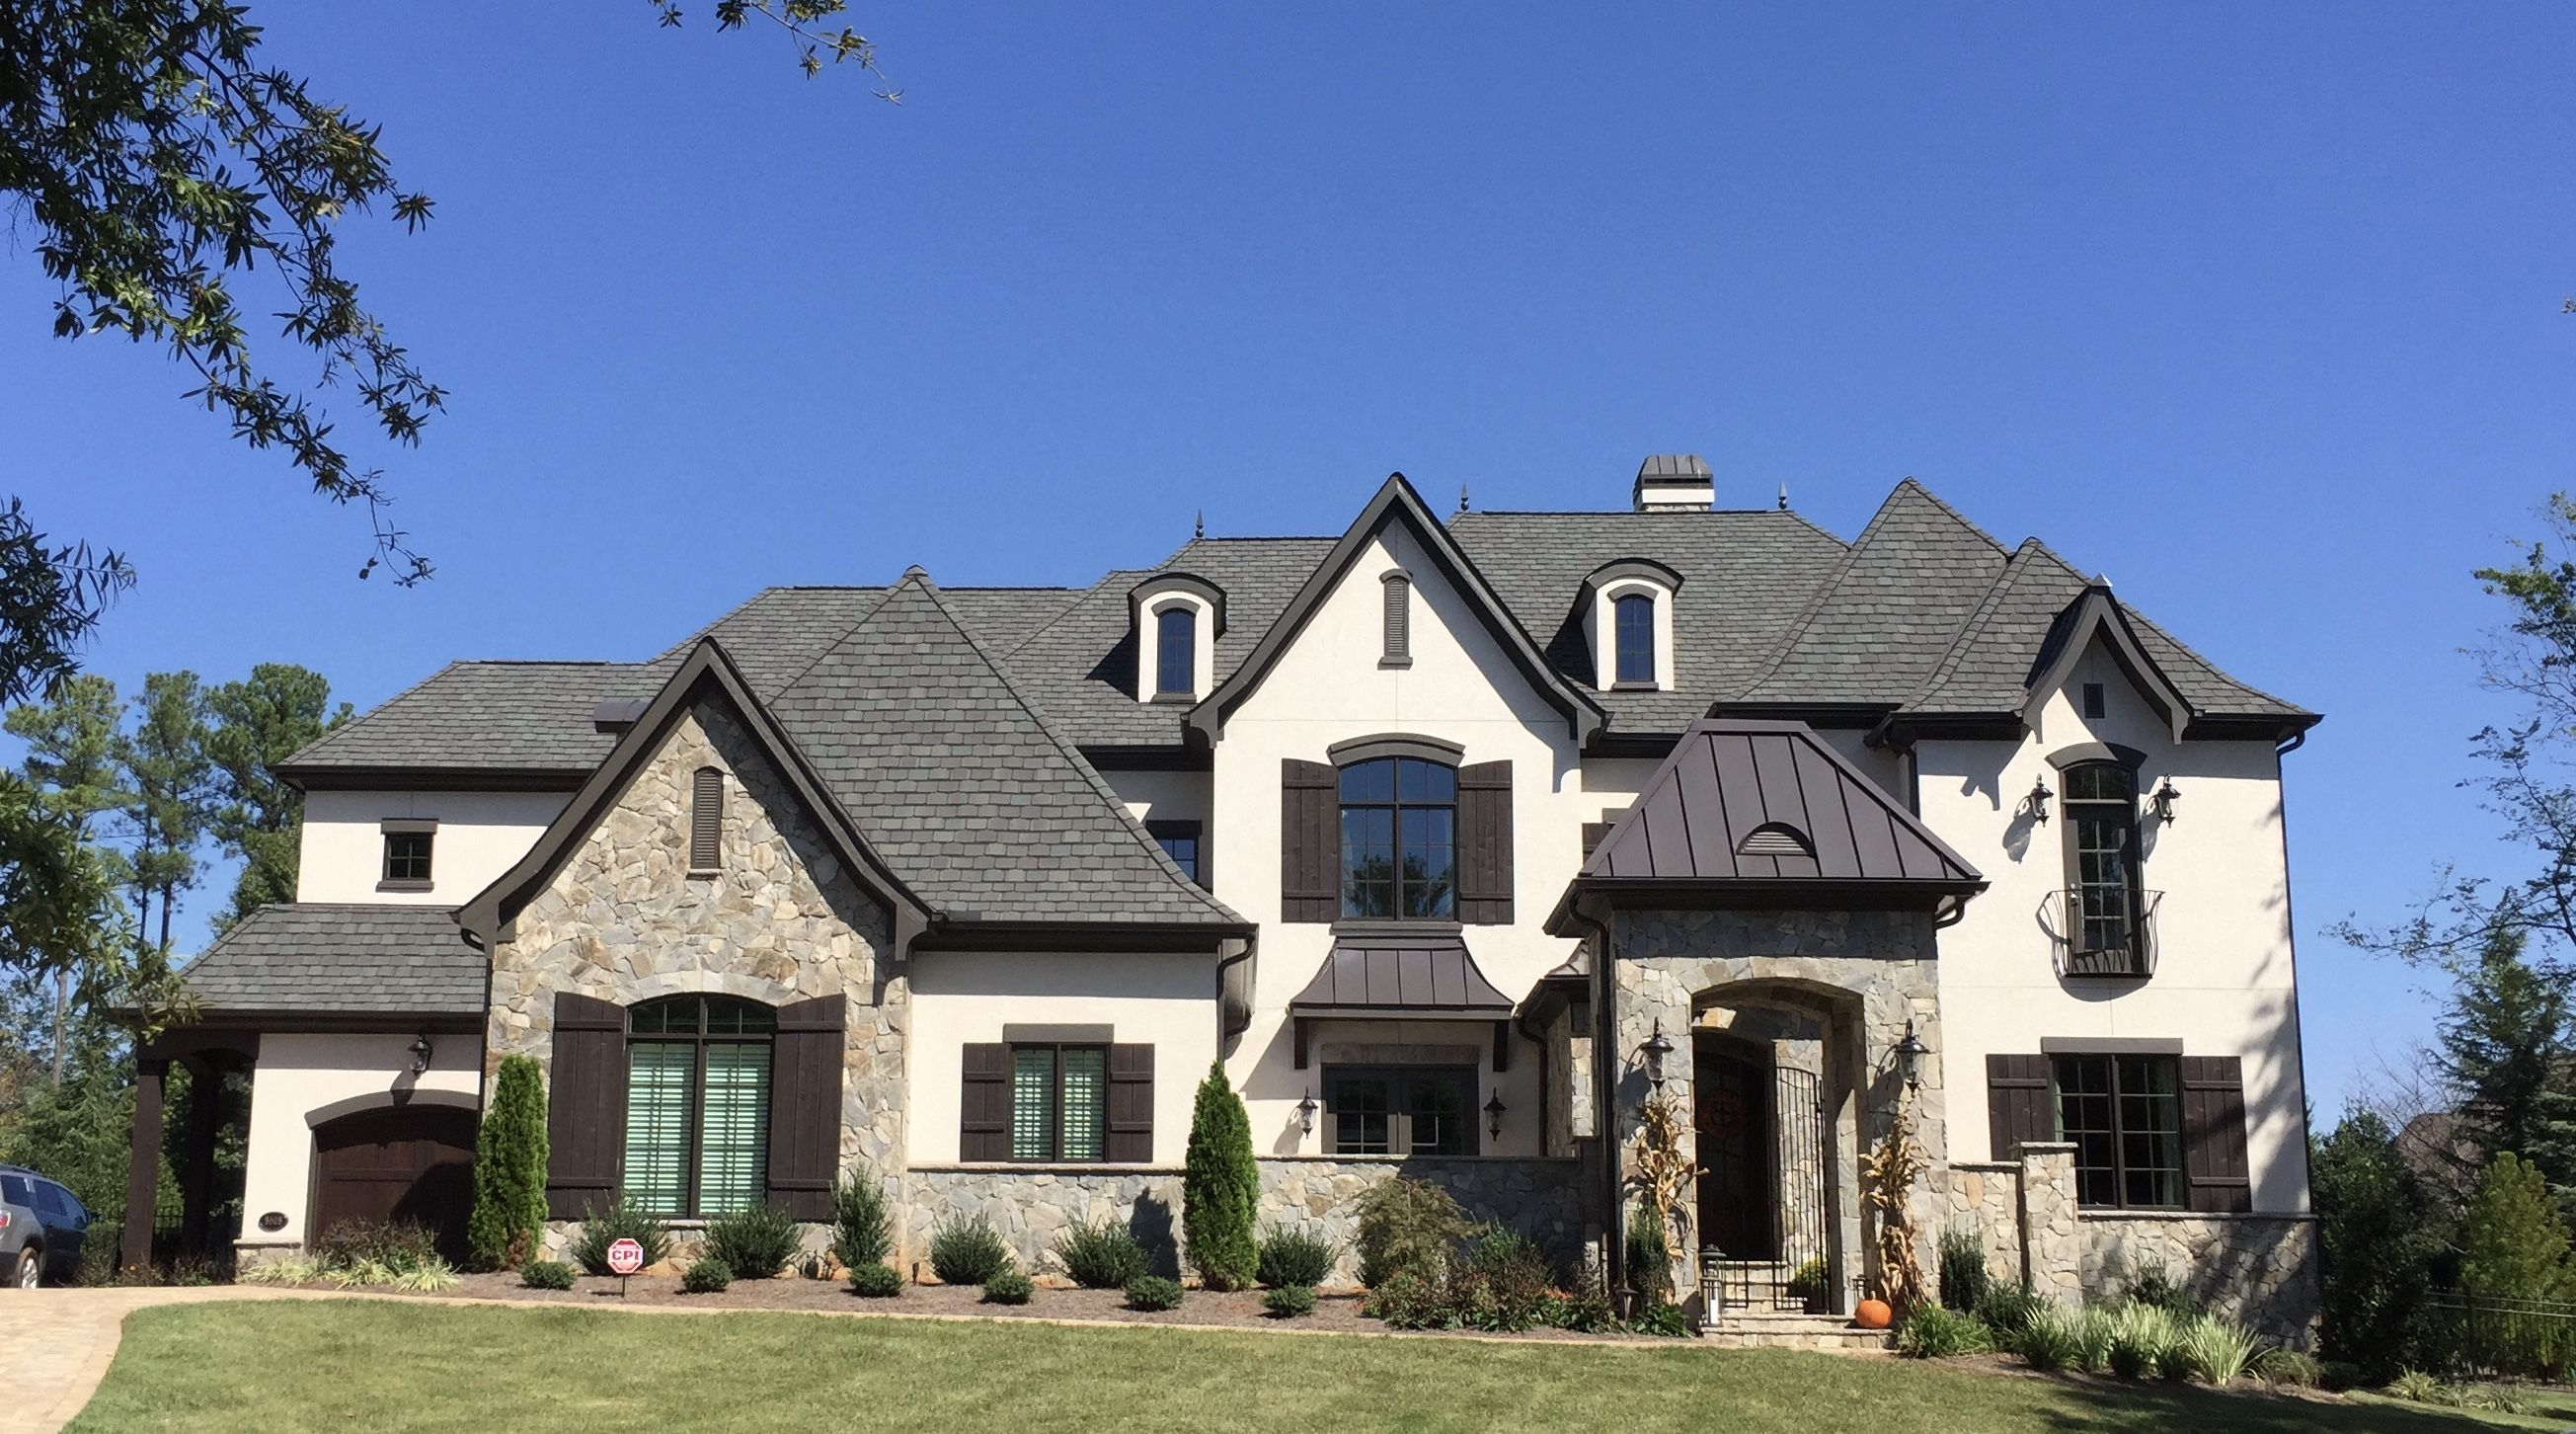 Arh Plan Silver Oak Exterior 58 Roof Grand Manor